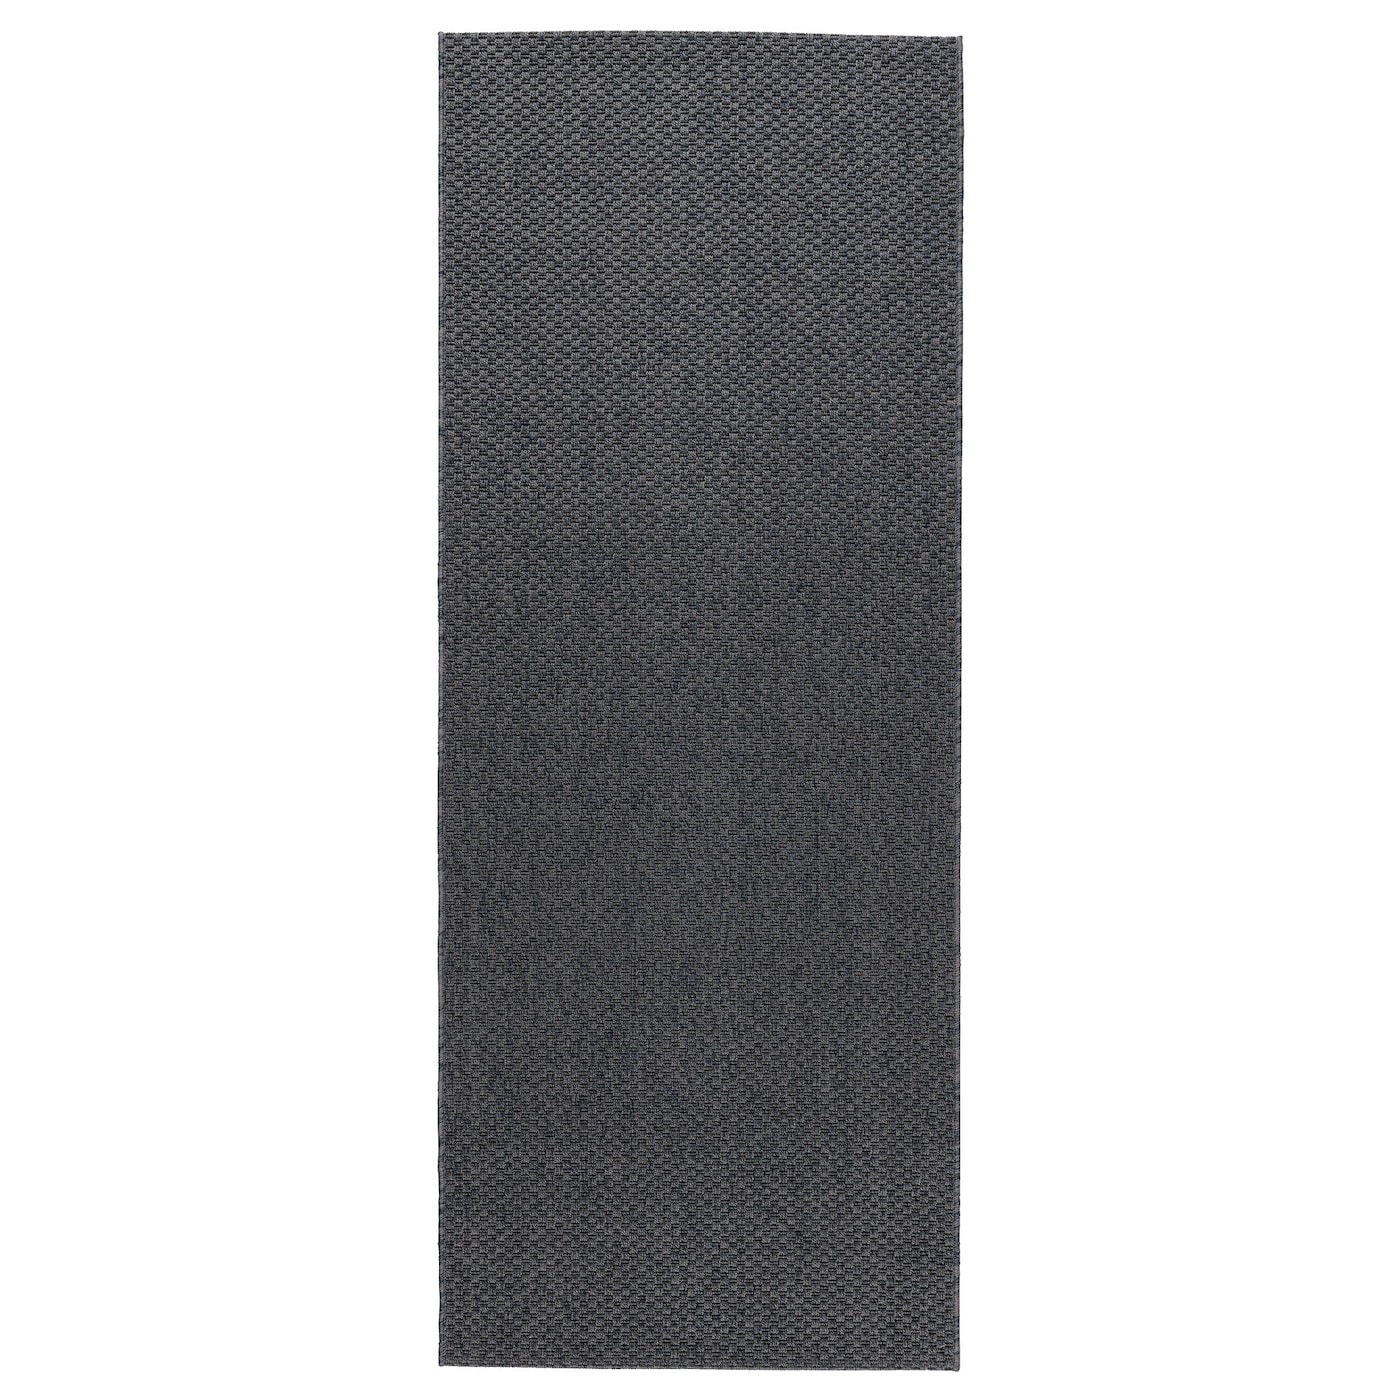 IKEA MORUM rug flatwoven, in/outdoor